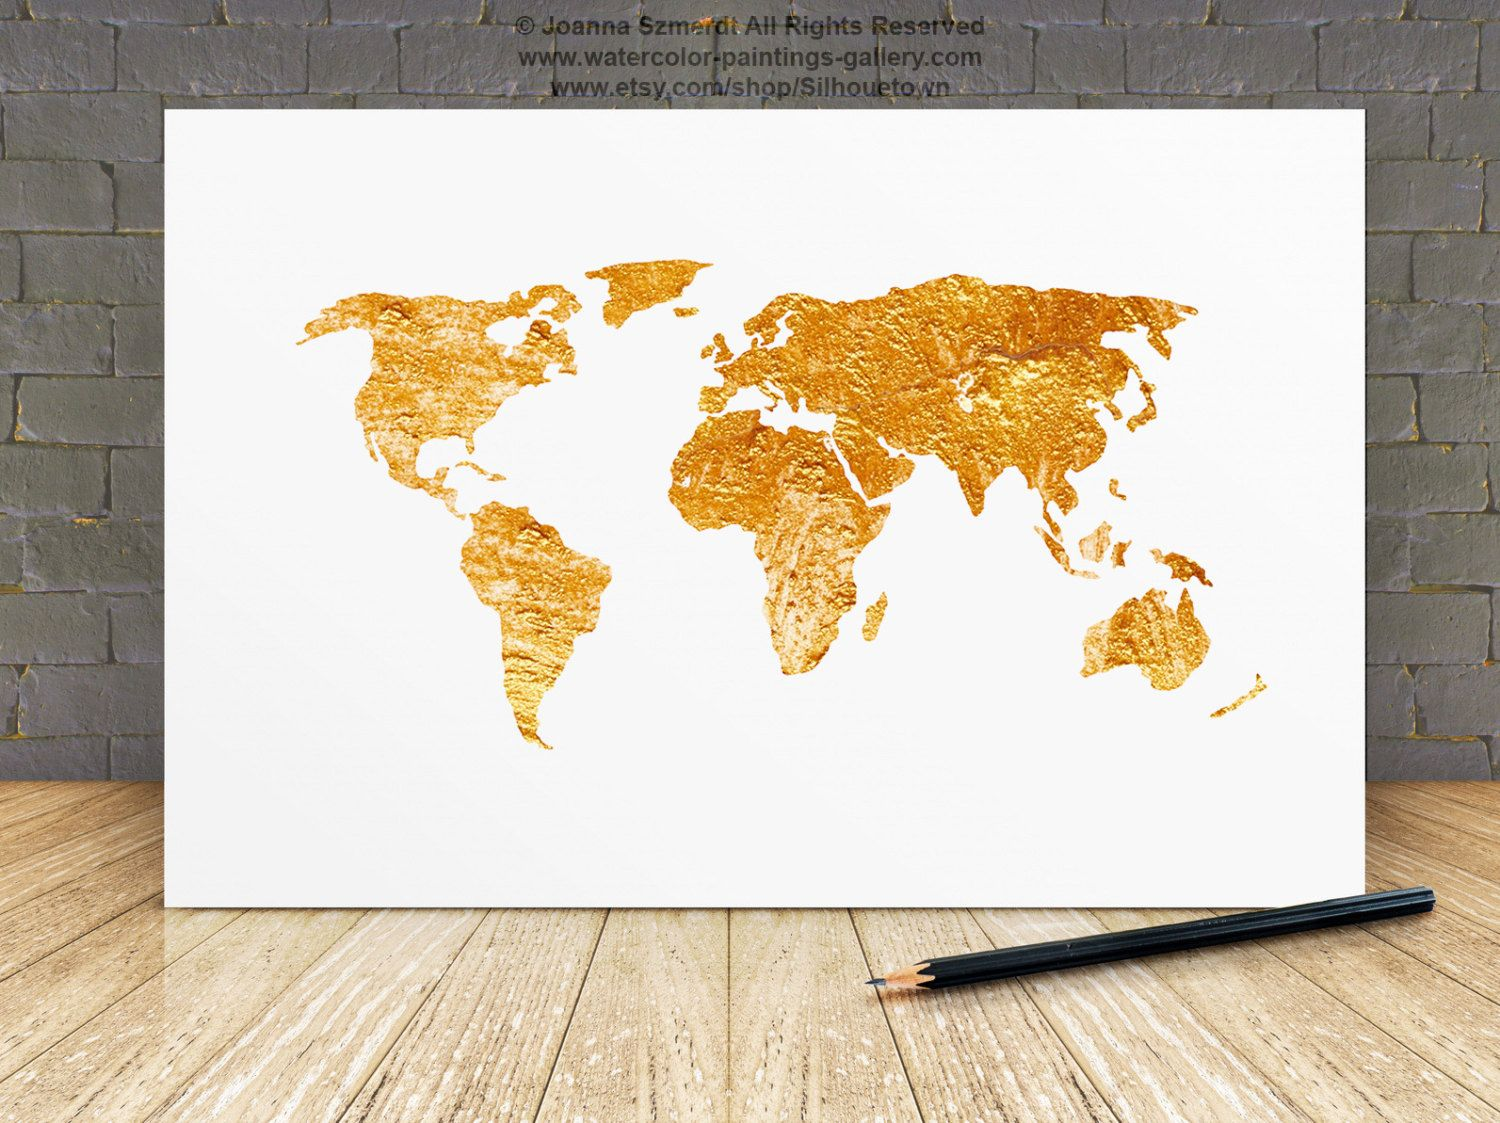 World map gold painting map silhouette large poster room decor world map gold painting map silhouette large poster room decor silhouette gumiabroncs Images